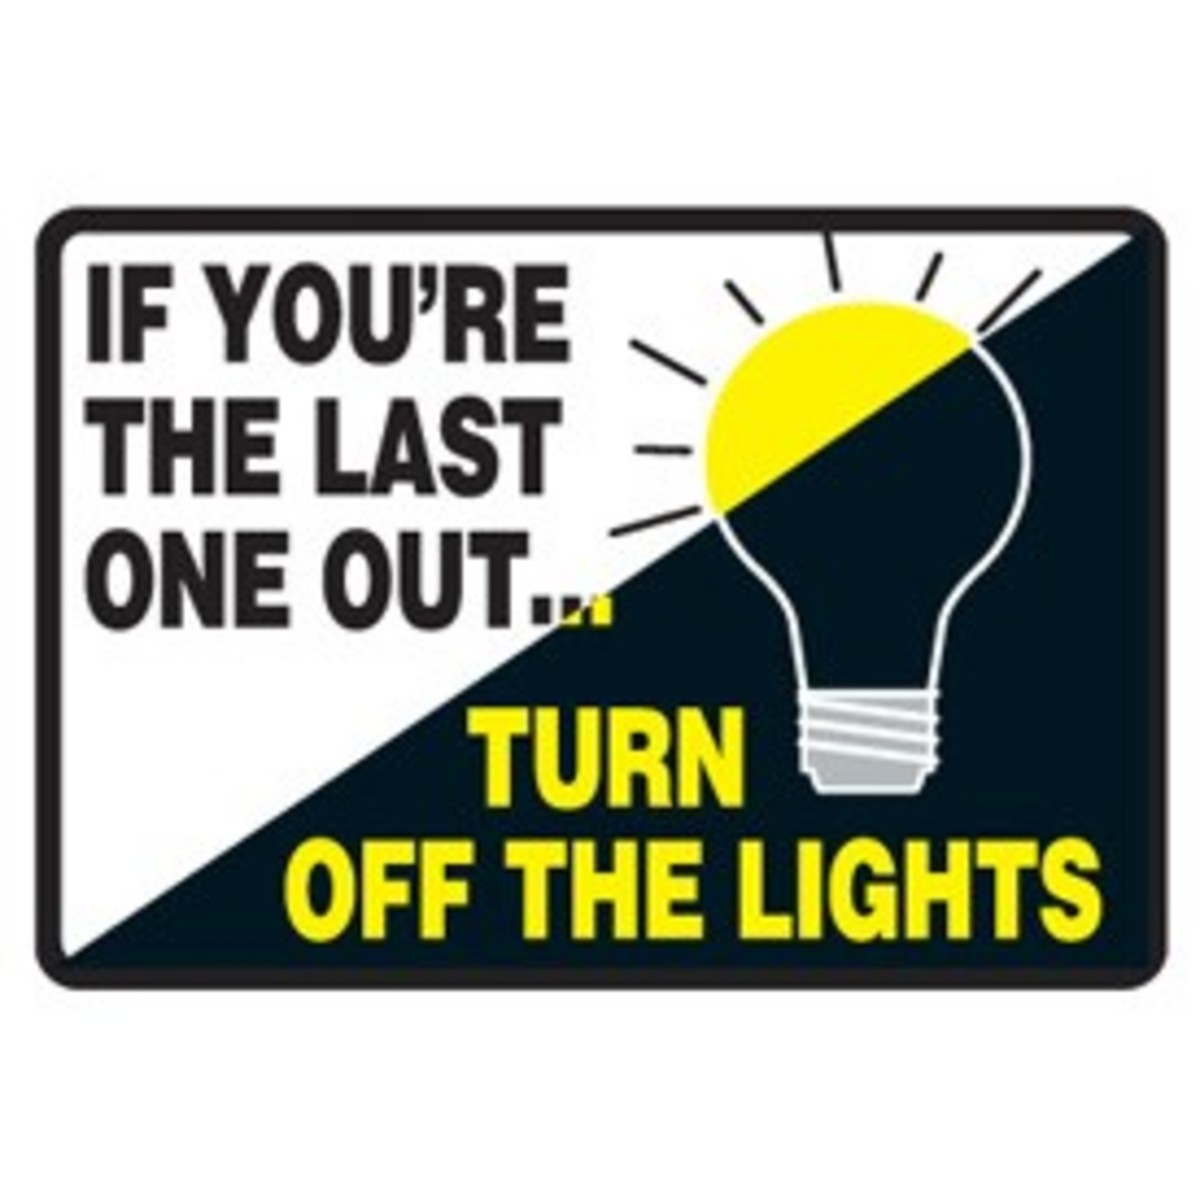 Turn off the ligth sign - like an old friend.